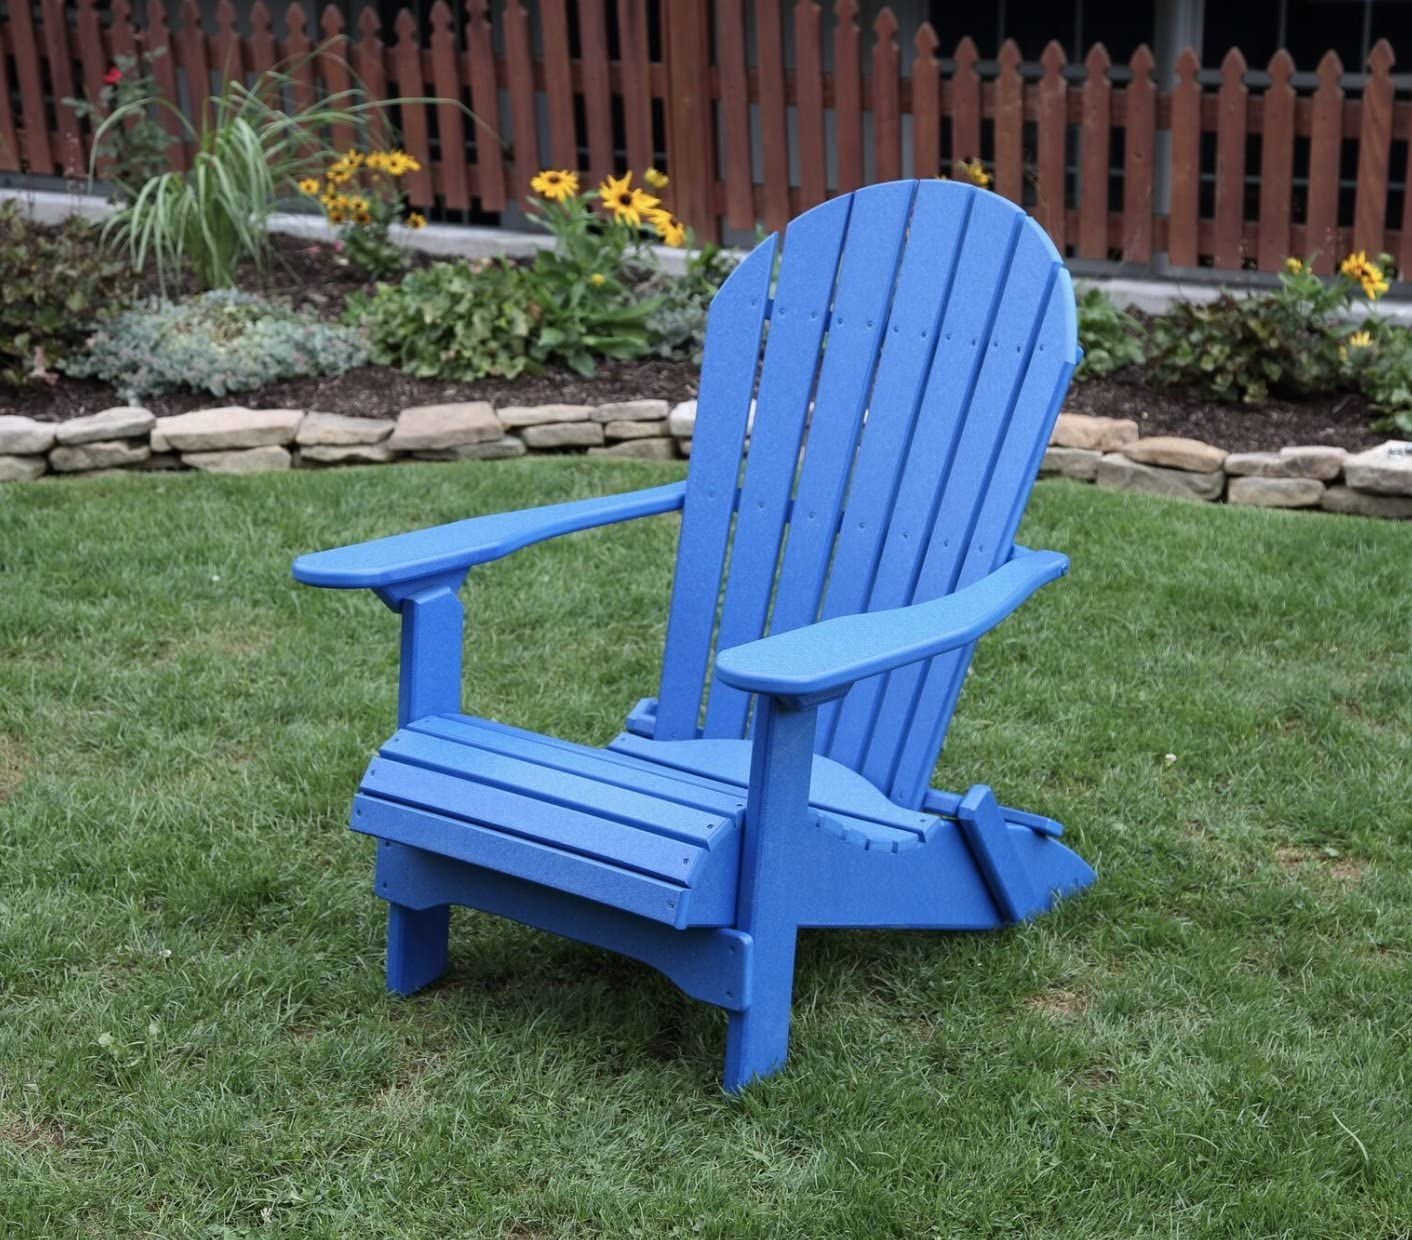 Blue-Poly Lumber Folding Adirondack Chair with Rolled Seating Heavy Duty Everlasting Lifetime PolyTuf HDPE – Made in USA – Amish Crafted